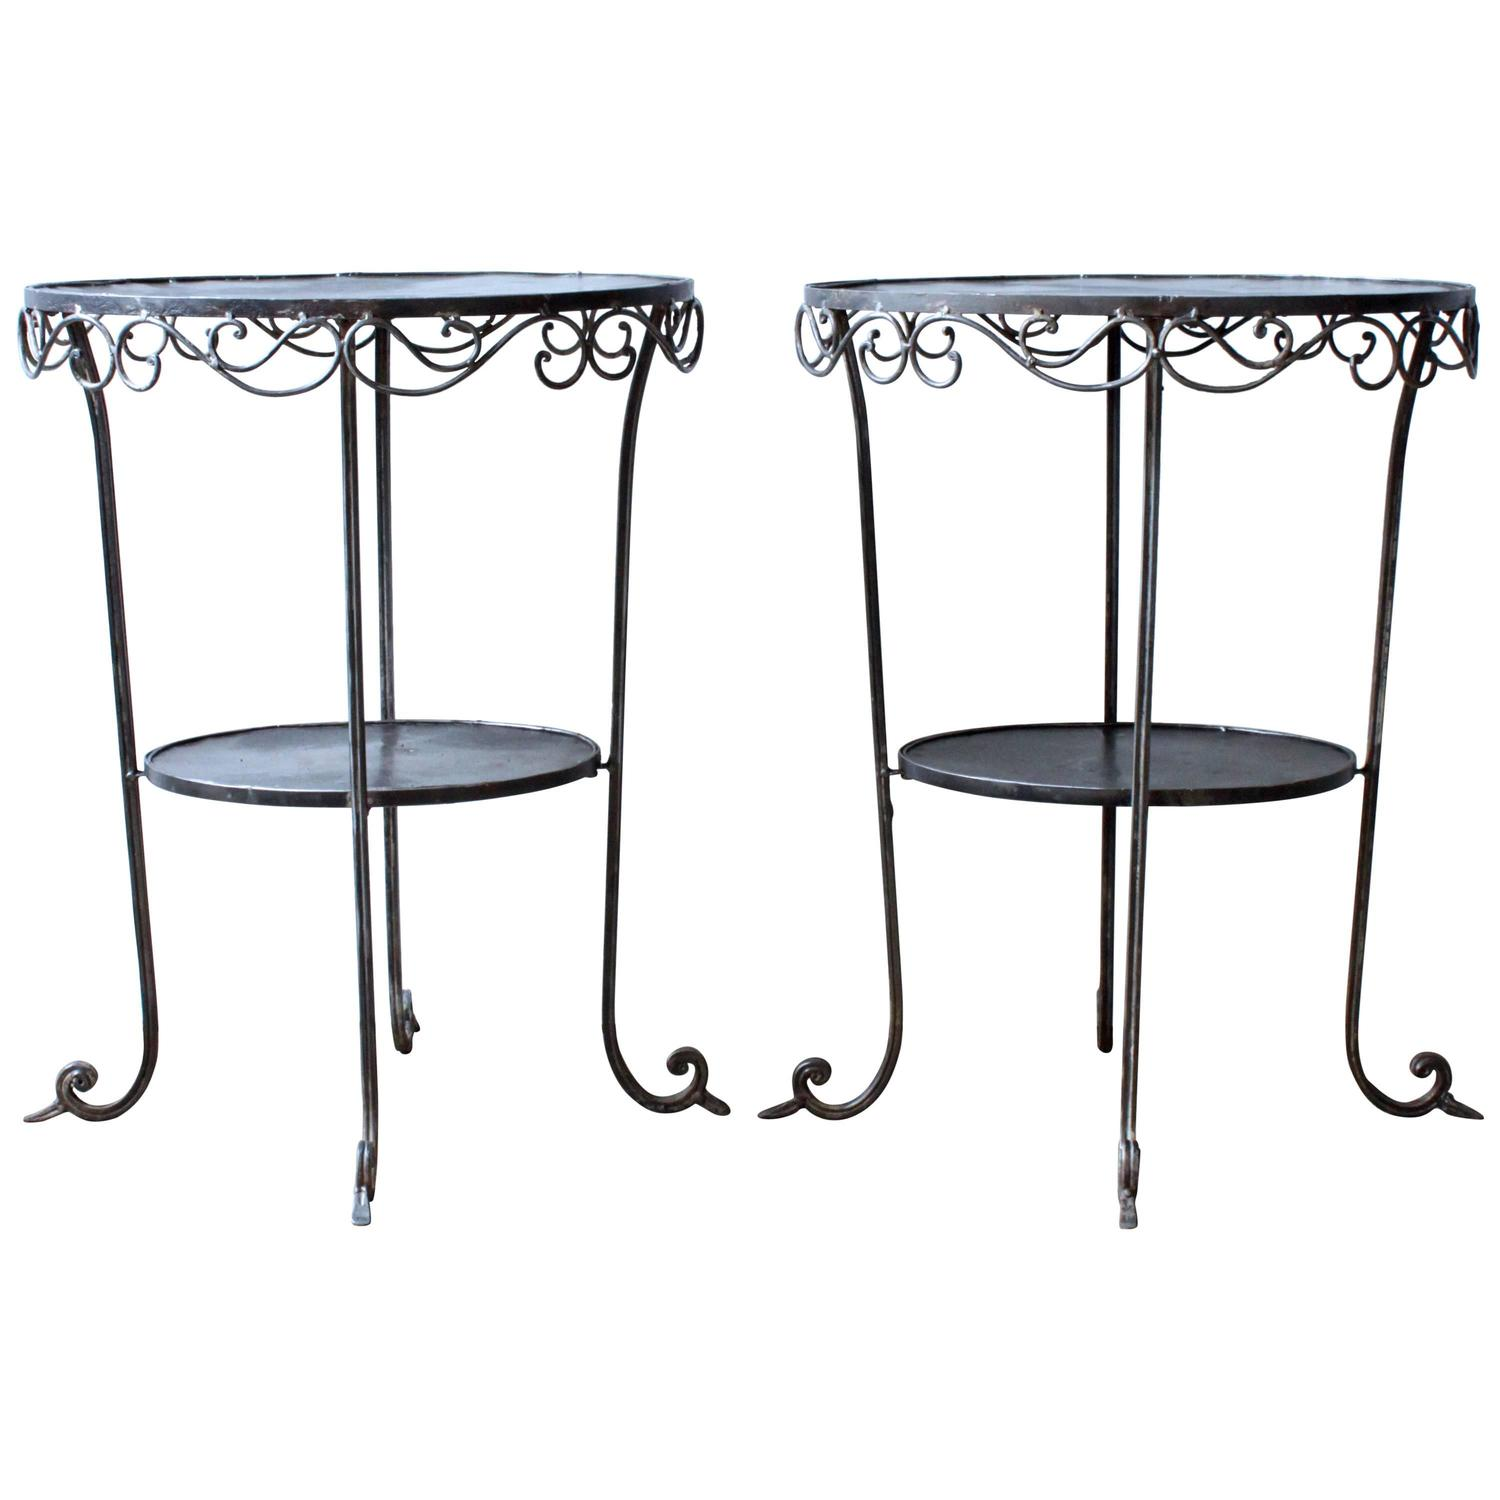 Wrought iron side tables at 1stdibs for Wrought iron side table